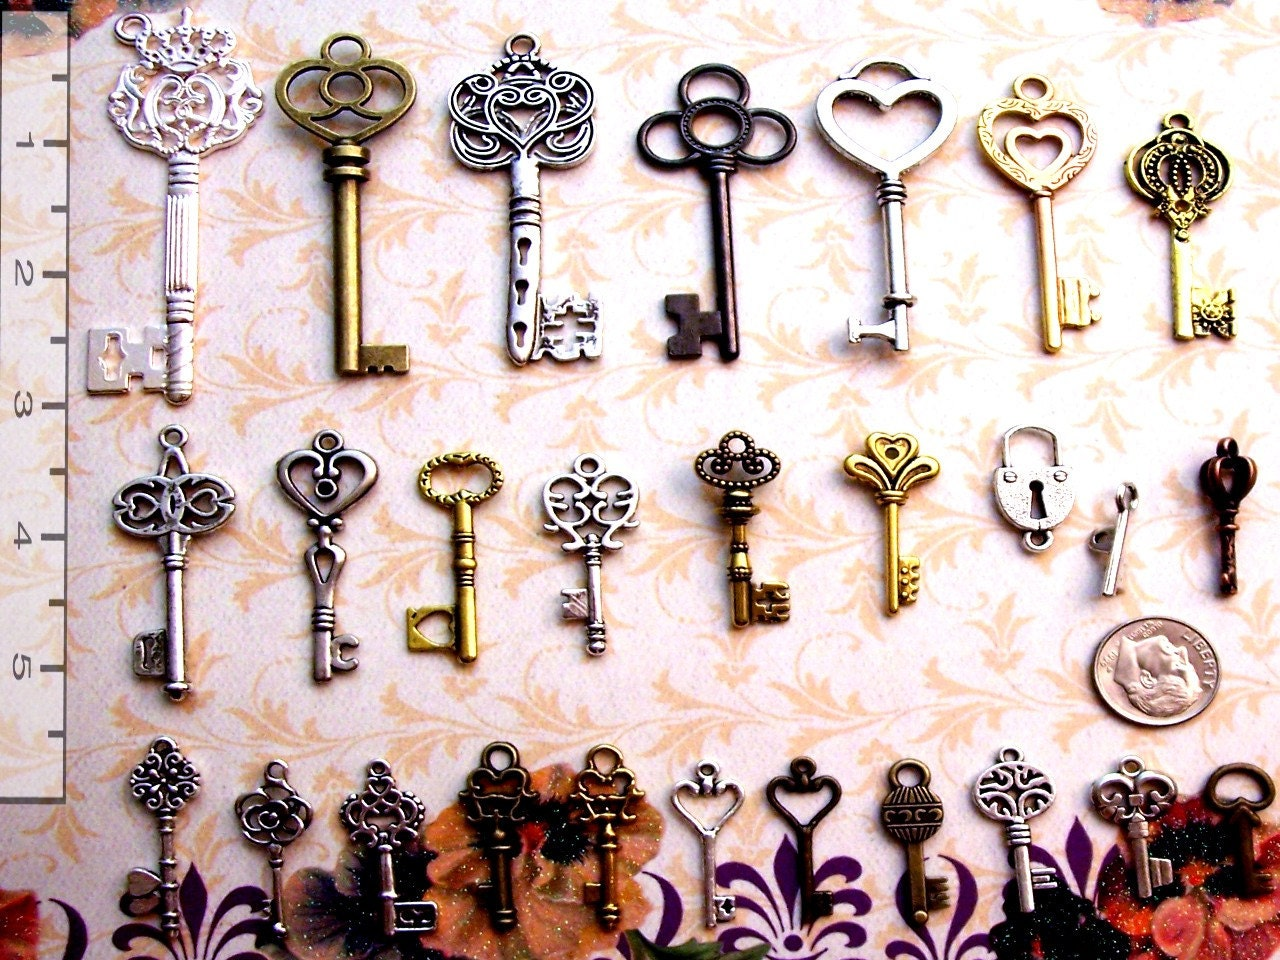 62 Steampunk Skeleton Keys Large Medium & Small Brass Charms Wedding Beads Supplies Pendant Set Collection Reproduction Vintage Antique steampunk buy now online